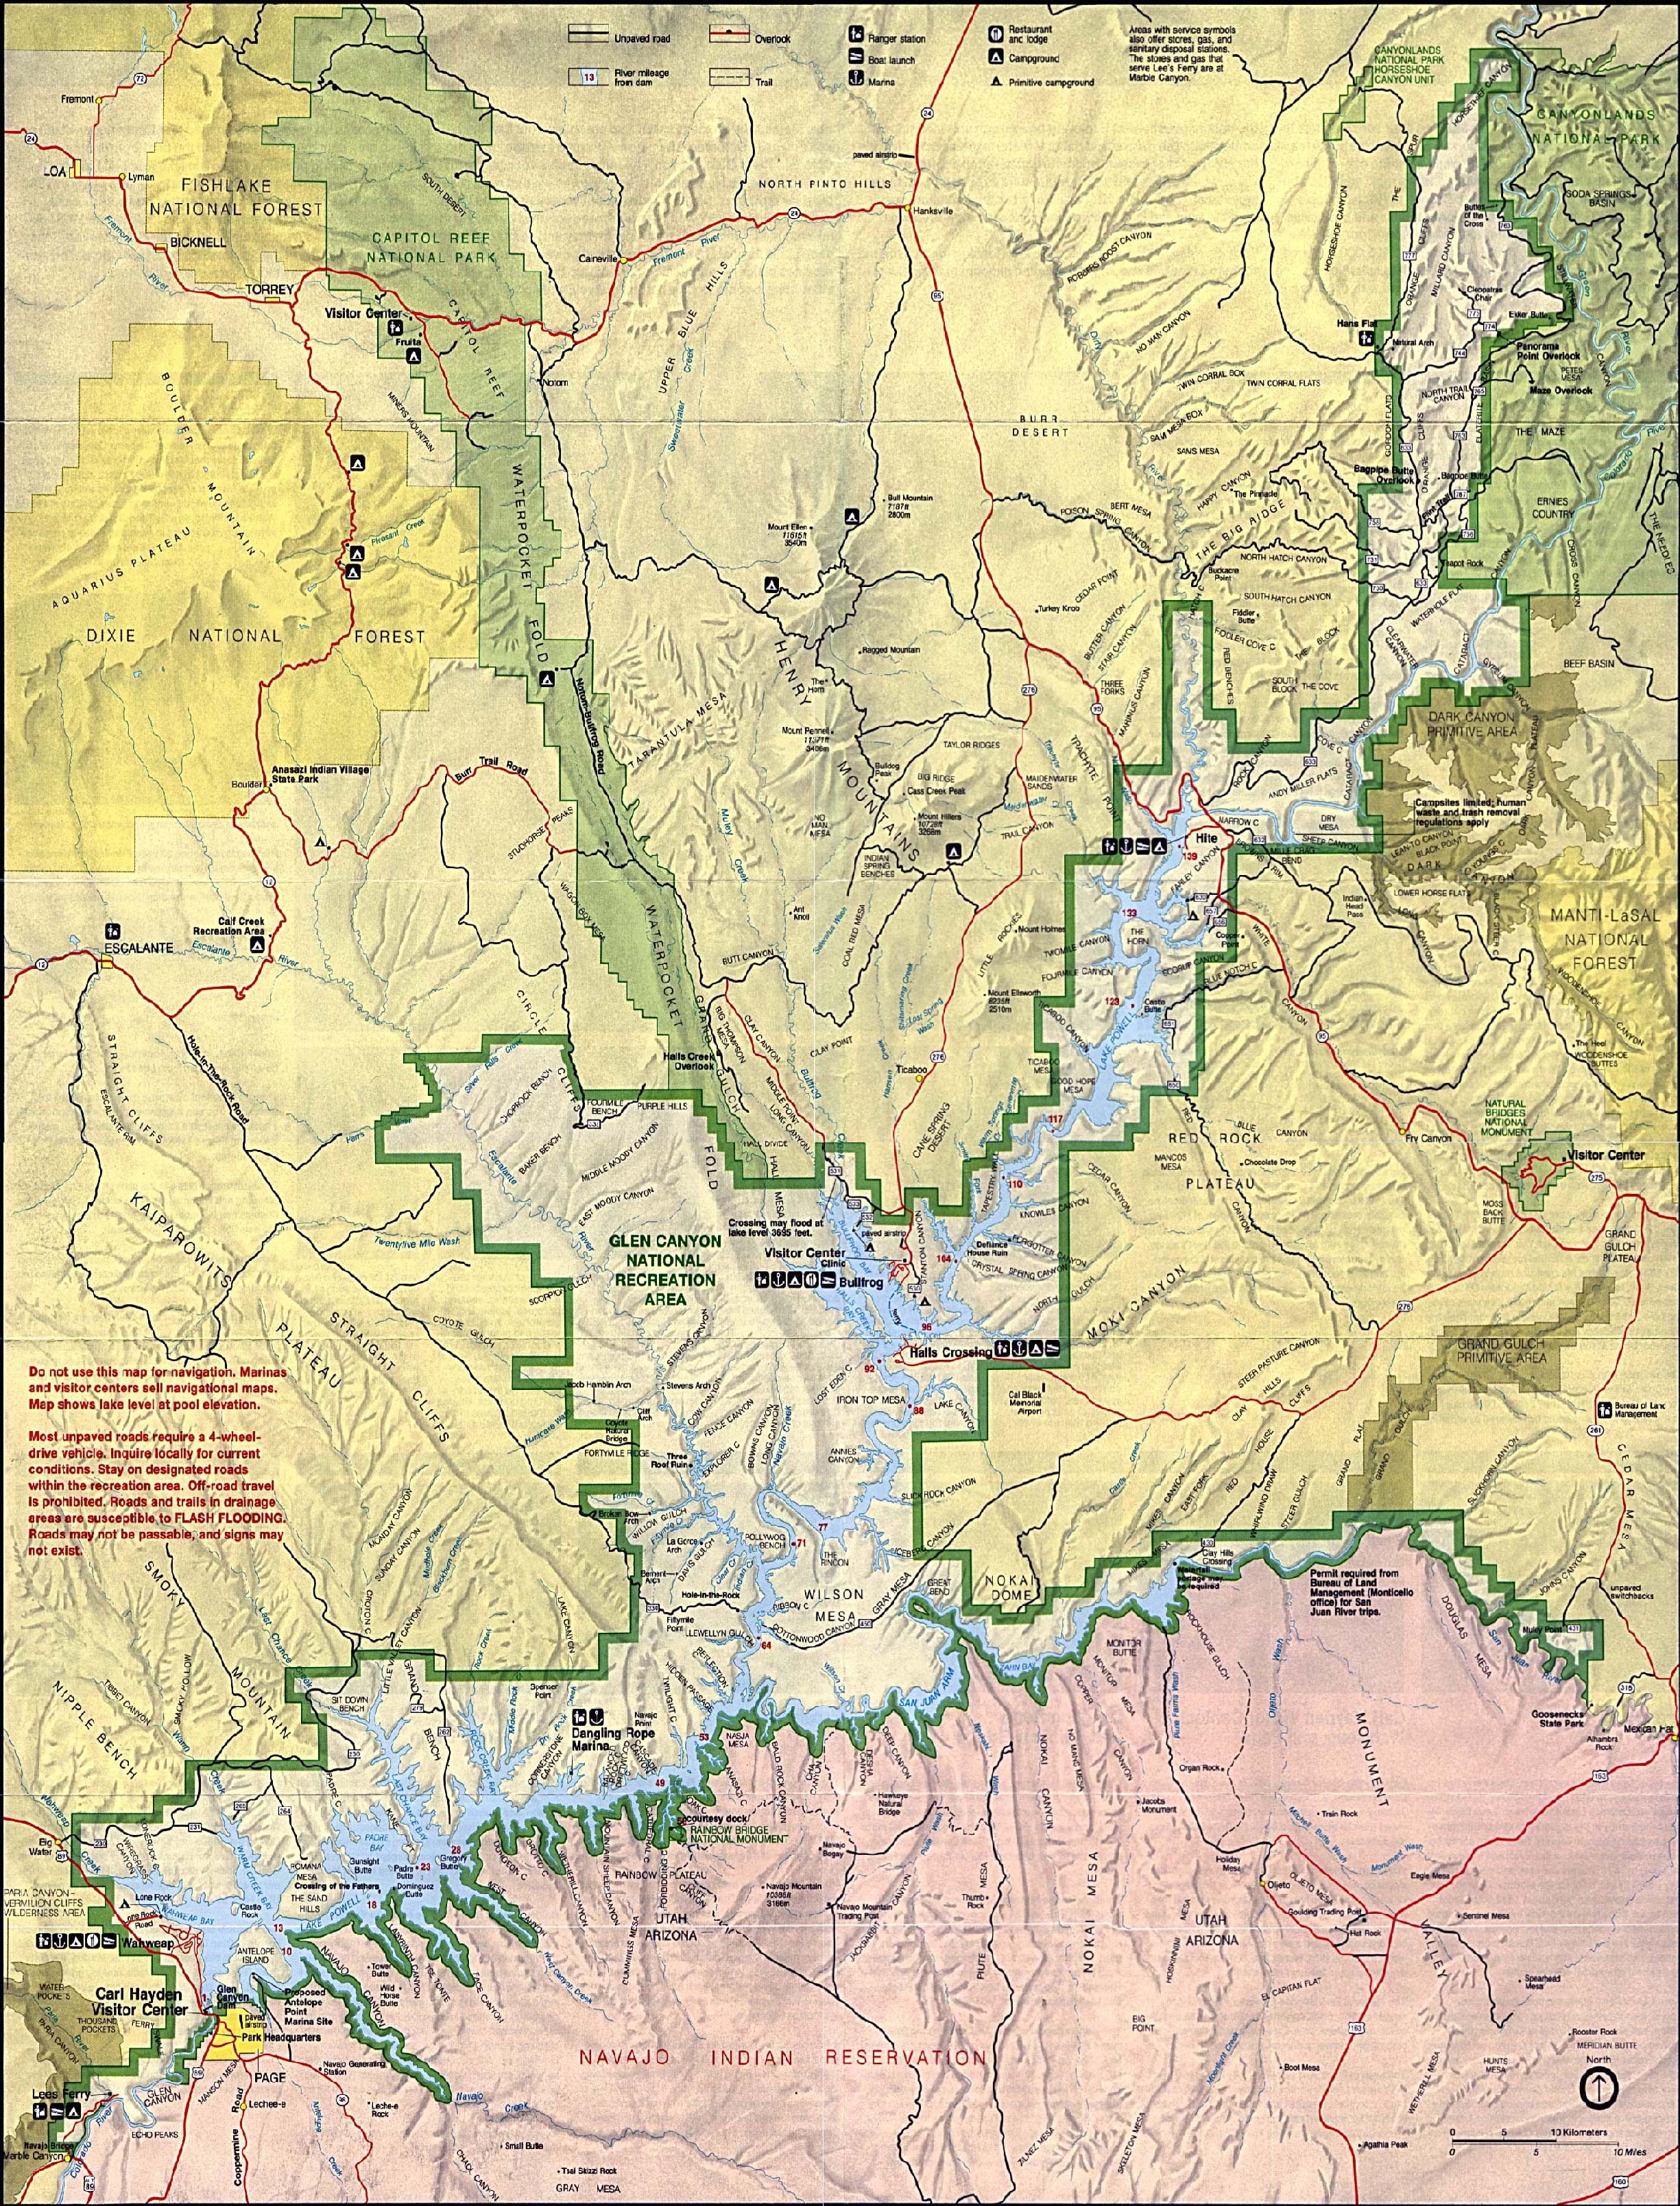 Maps of United States National Parks, Monuments and Historic Sites Glen Canyon National Recreation Area [Arizona / Utah] (Park Map / Shaded Relief) 1995 (1.8MB)